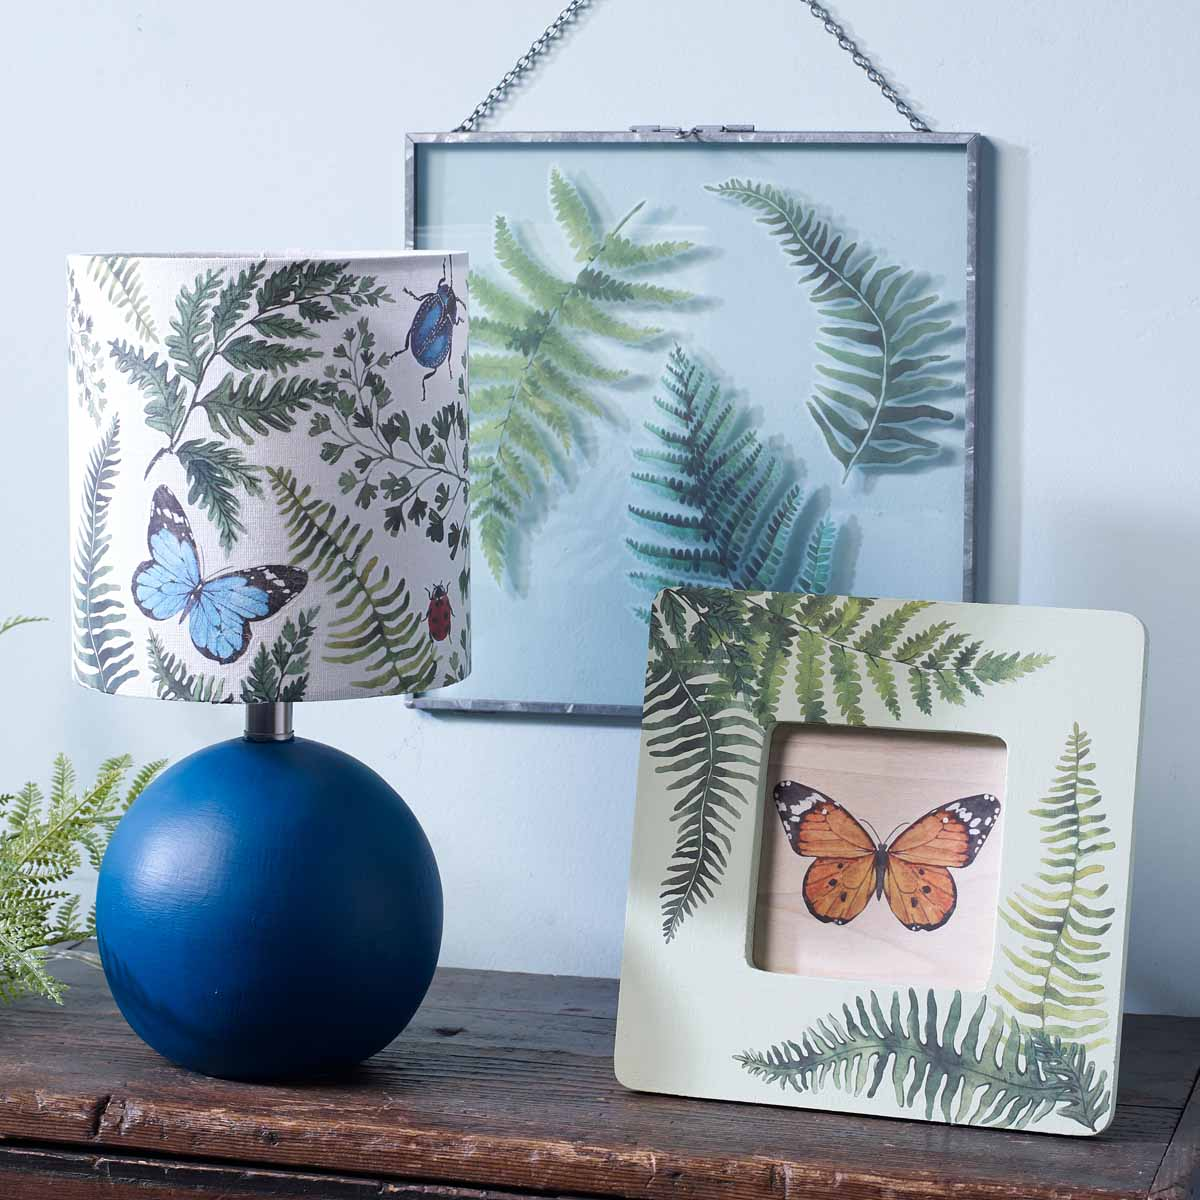 Rub-on Transfer Lamp, Frame, and Glass Wall Hanging